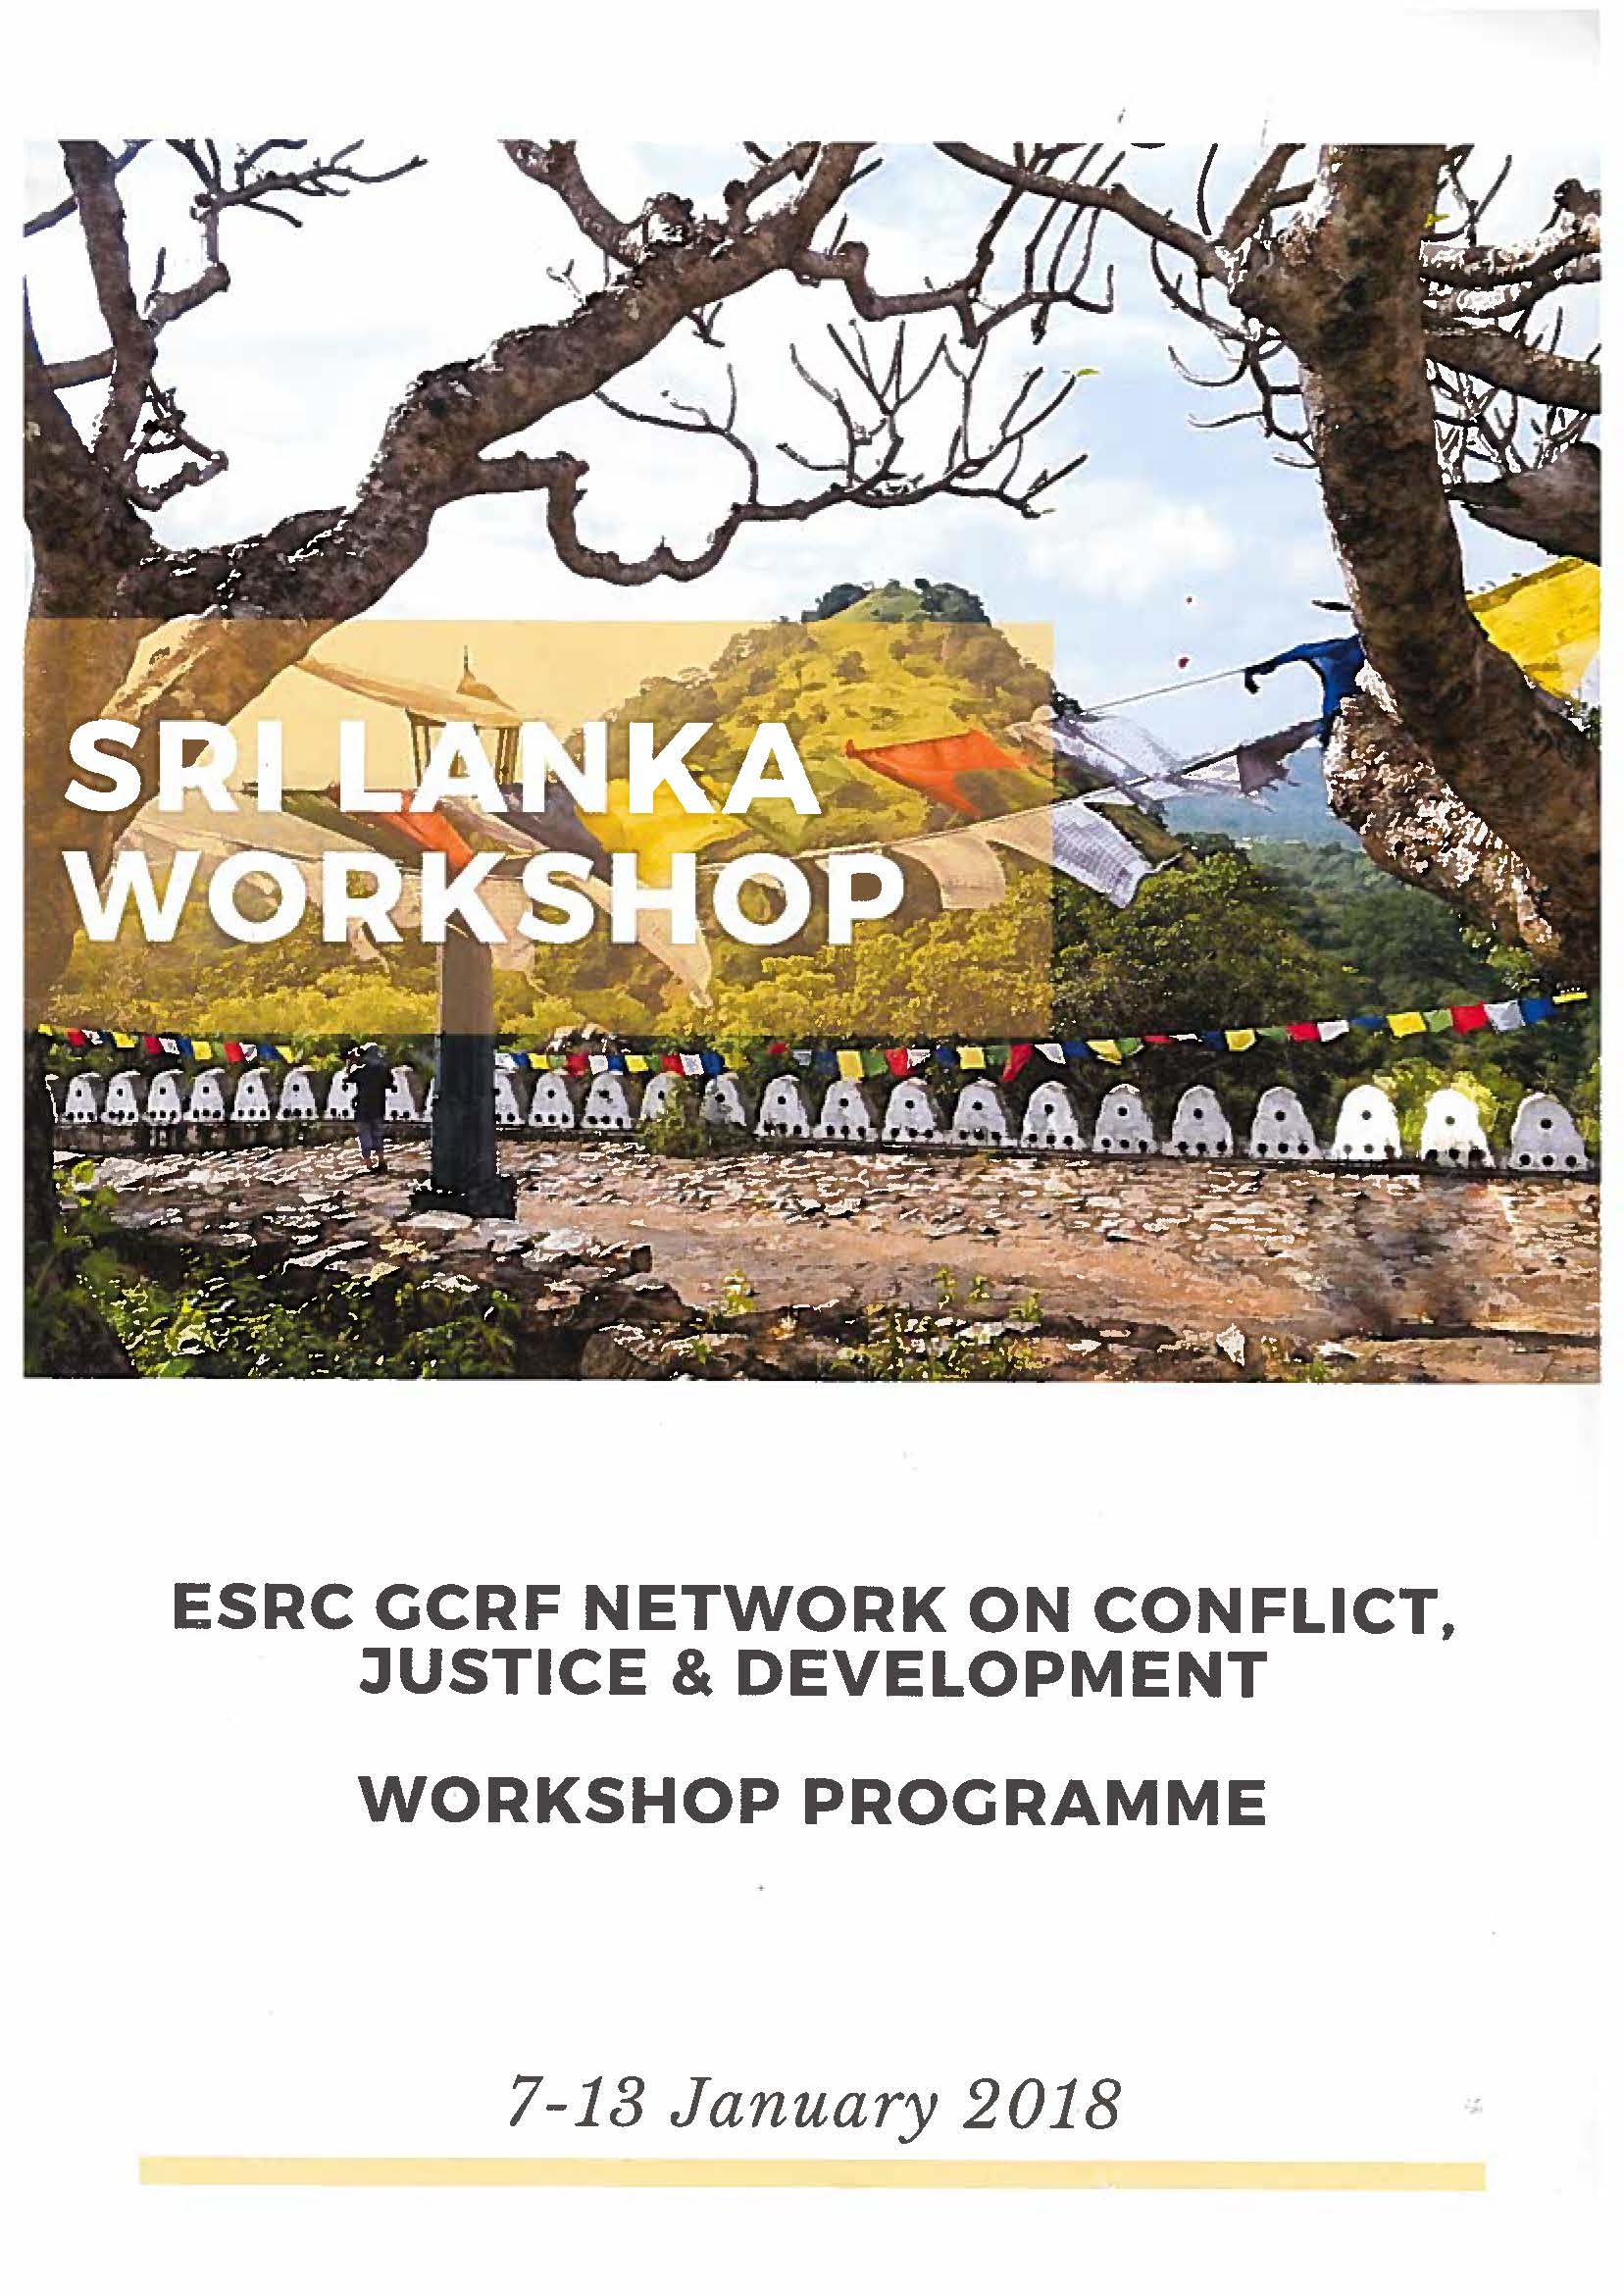 ESRC GCRF Network on Conflict, Justice, and Development, Sri Lanka